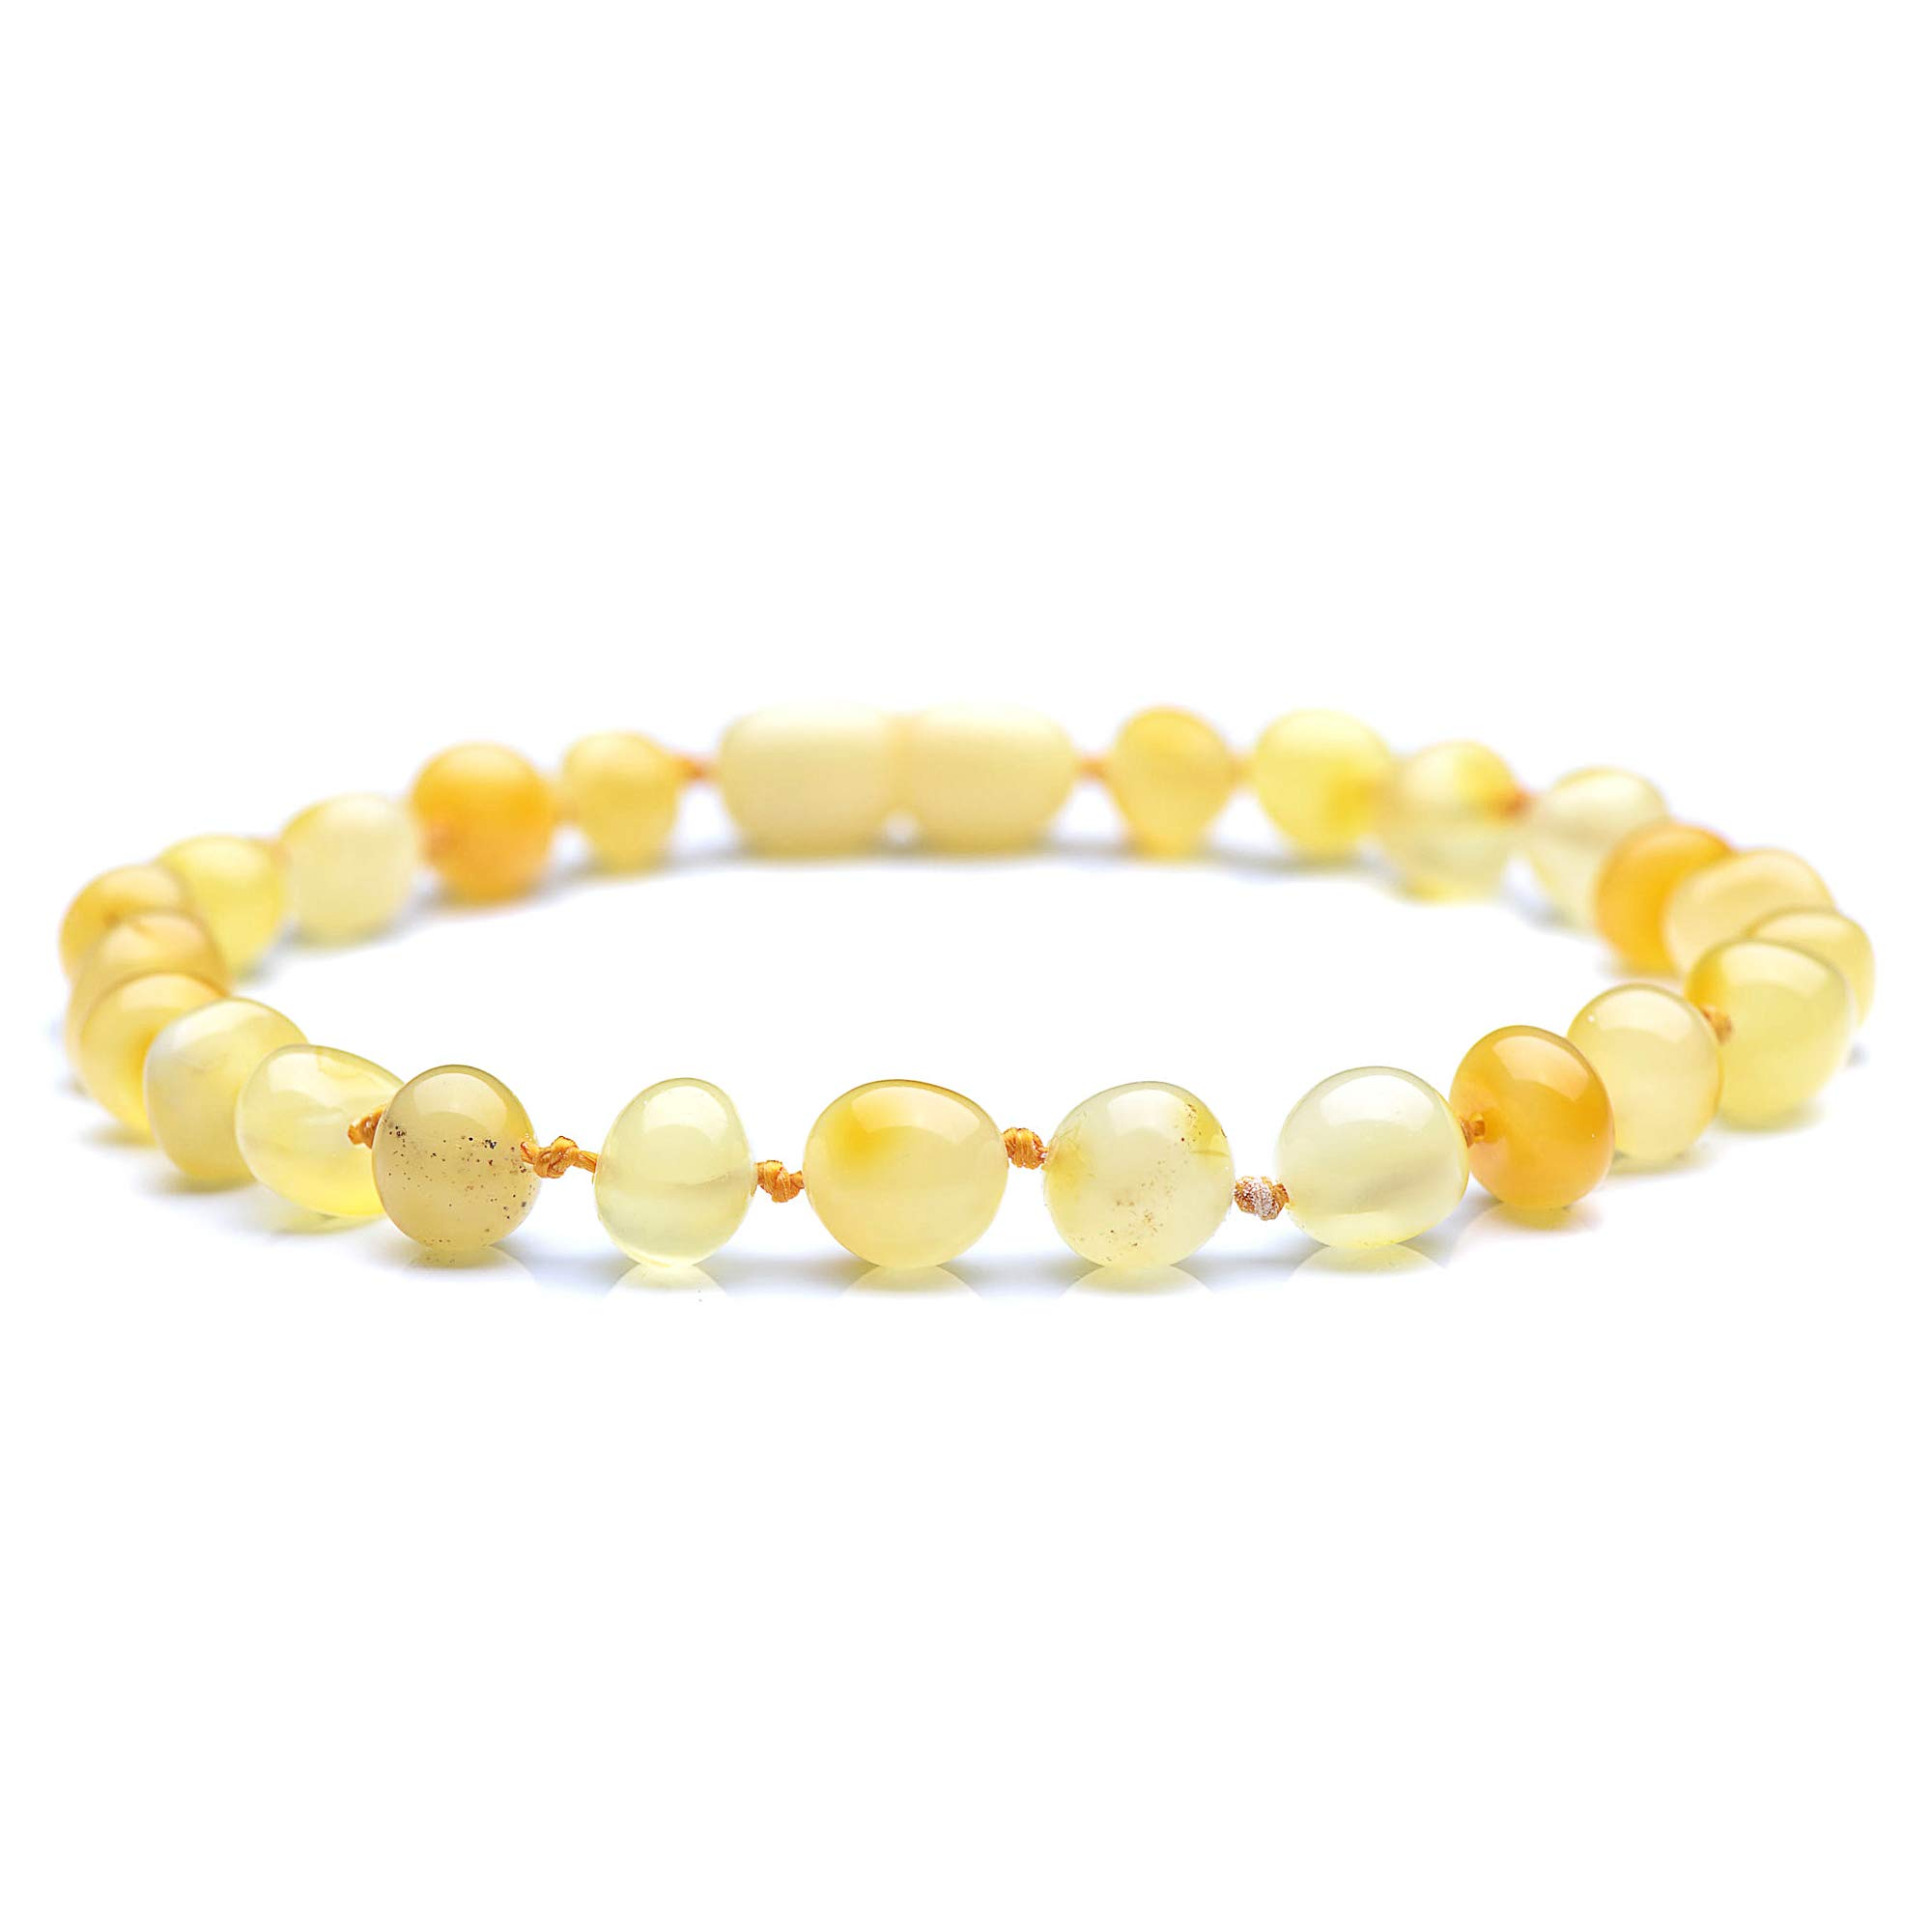 Genuine Baltic Amber Bracelet for Adult - Knotted Between Beads - Screw Clasp (Honey, 7.8)